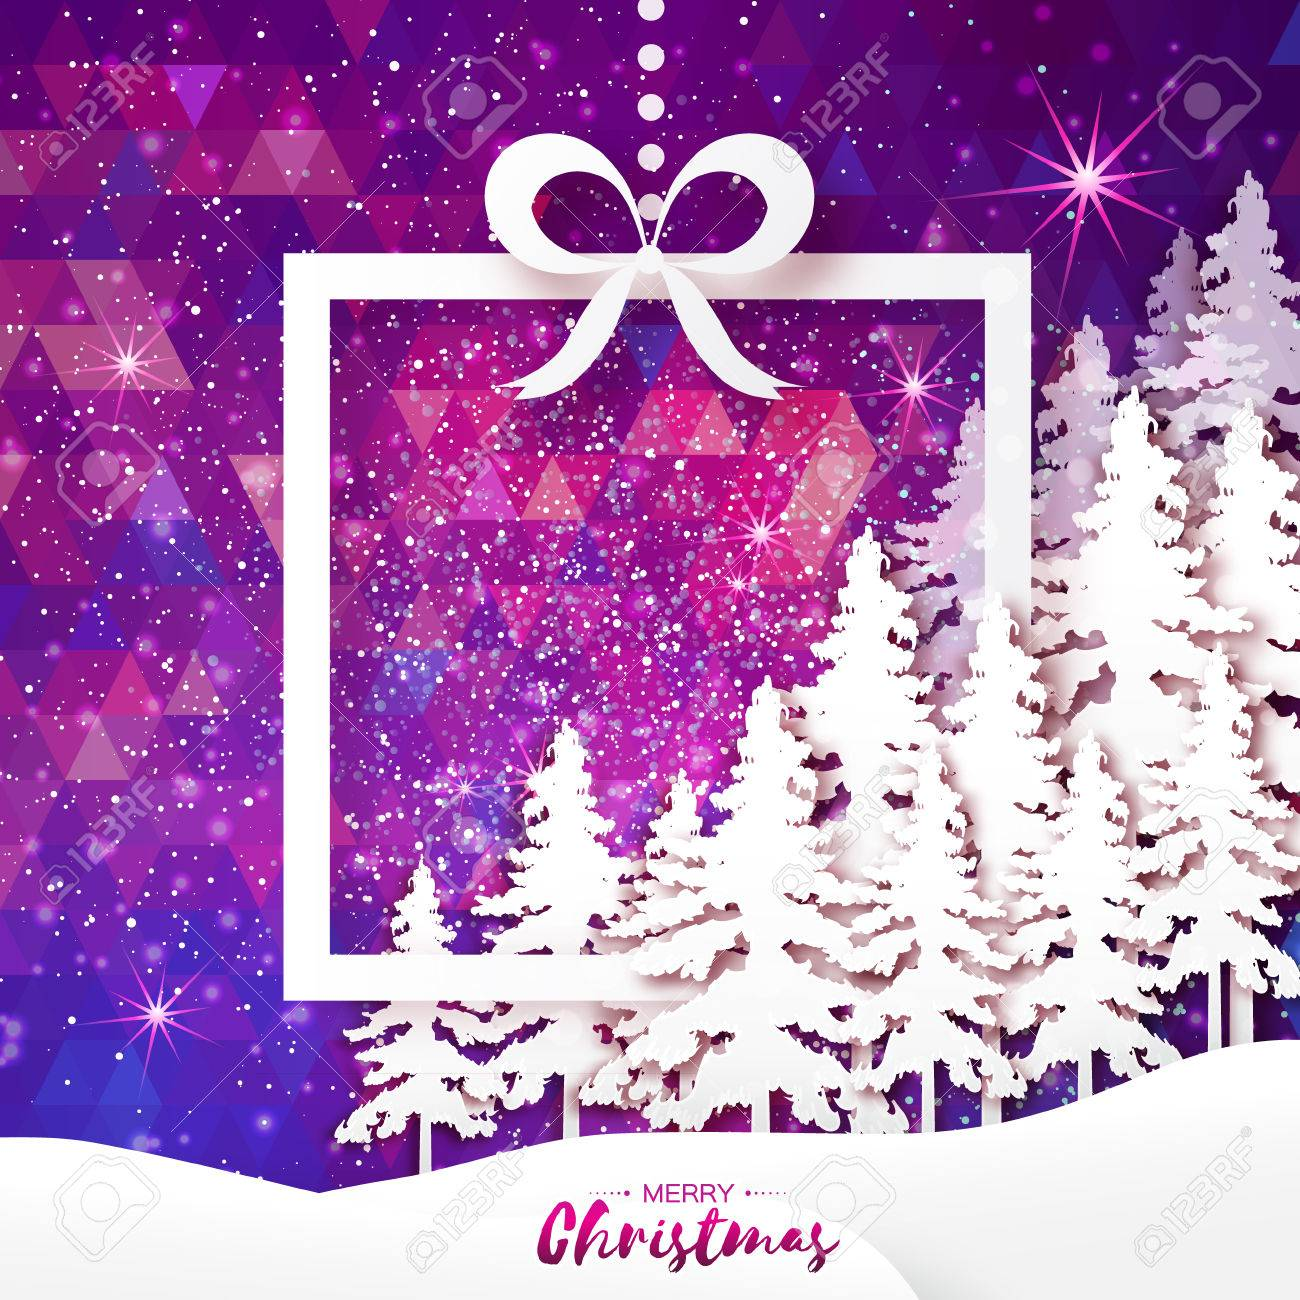 White Origami Merry Christmas Greeting Card With Cutout Paper